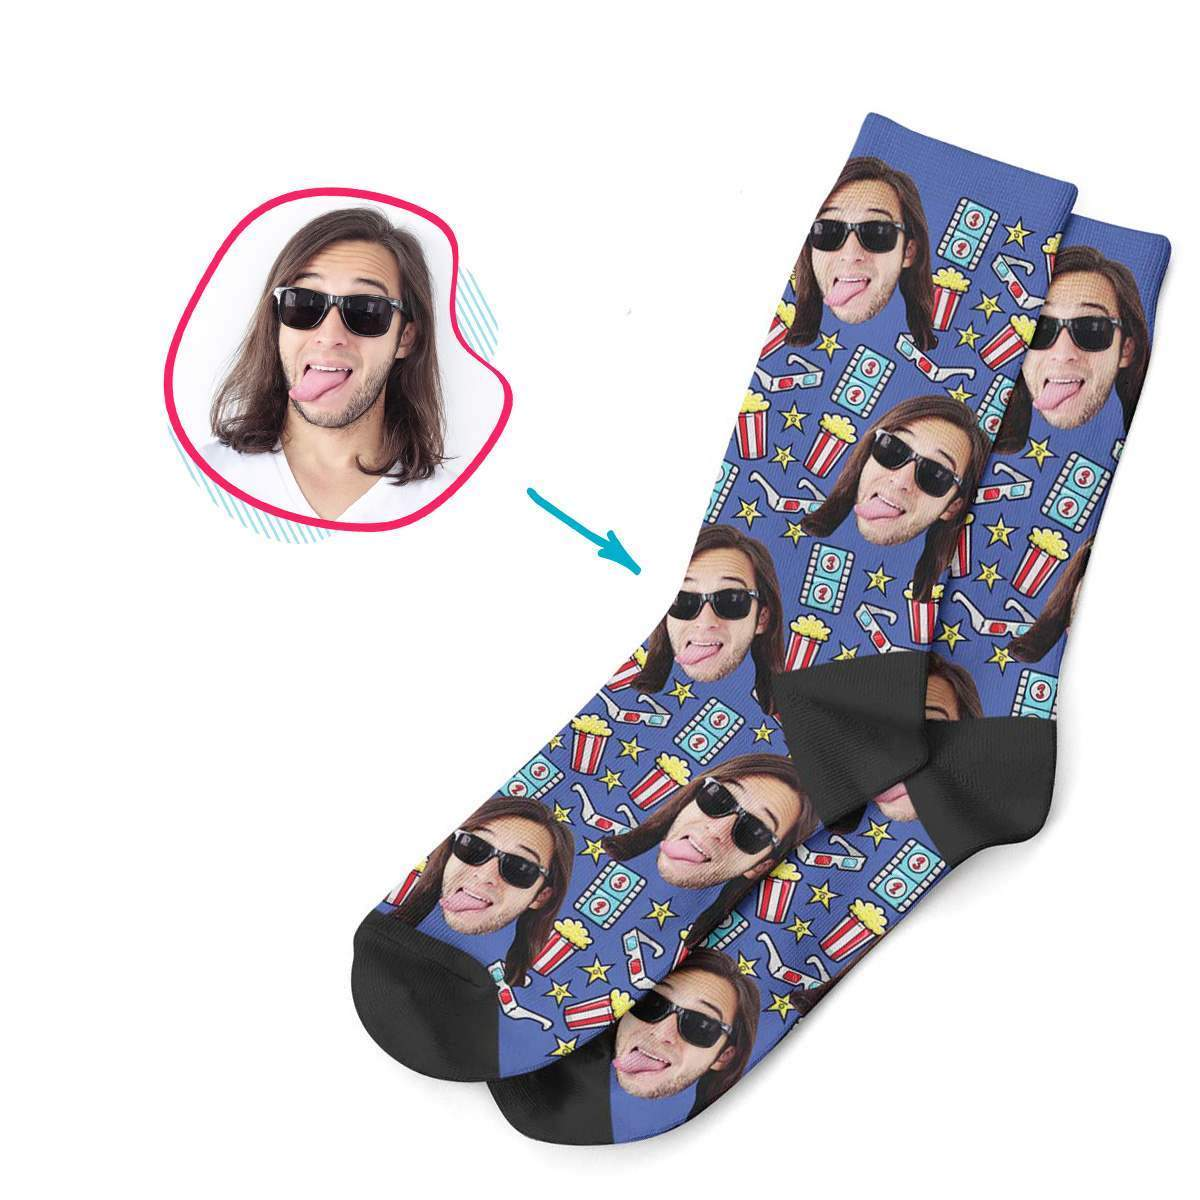 darkblue Movie socks personalized with photo of face printed on them